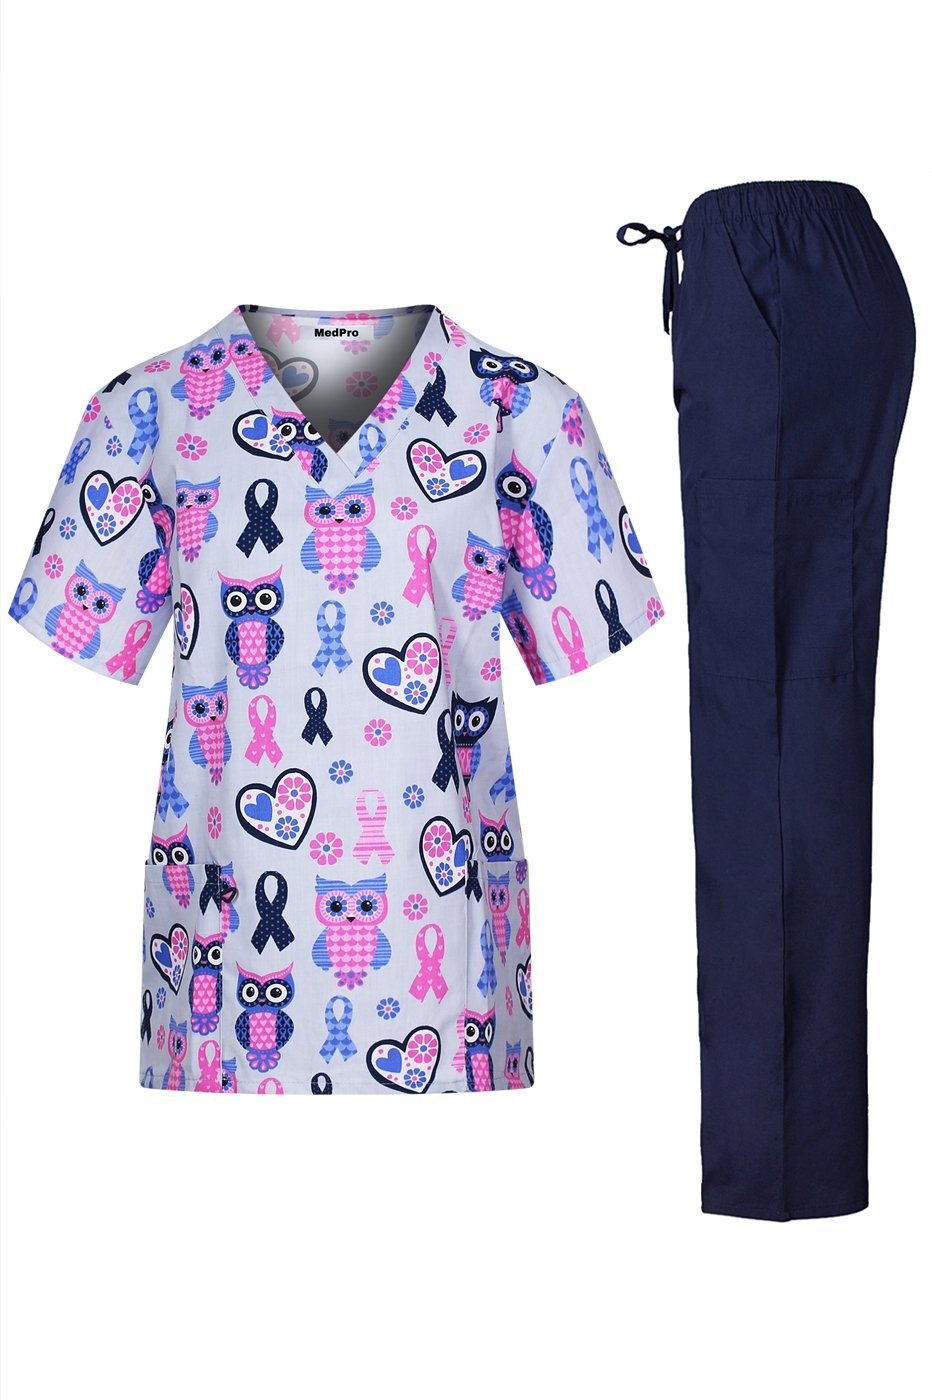 MedPro Women's Medical Scrub Set with V Neck Top and Cargo Pants Light Blue Navy L